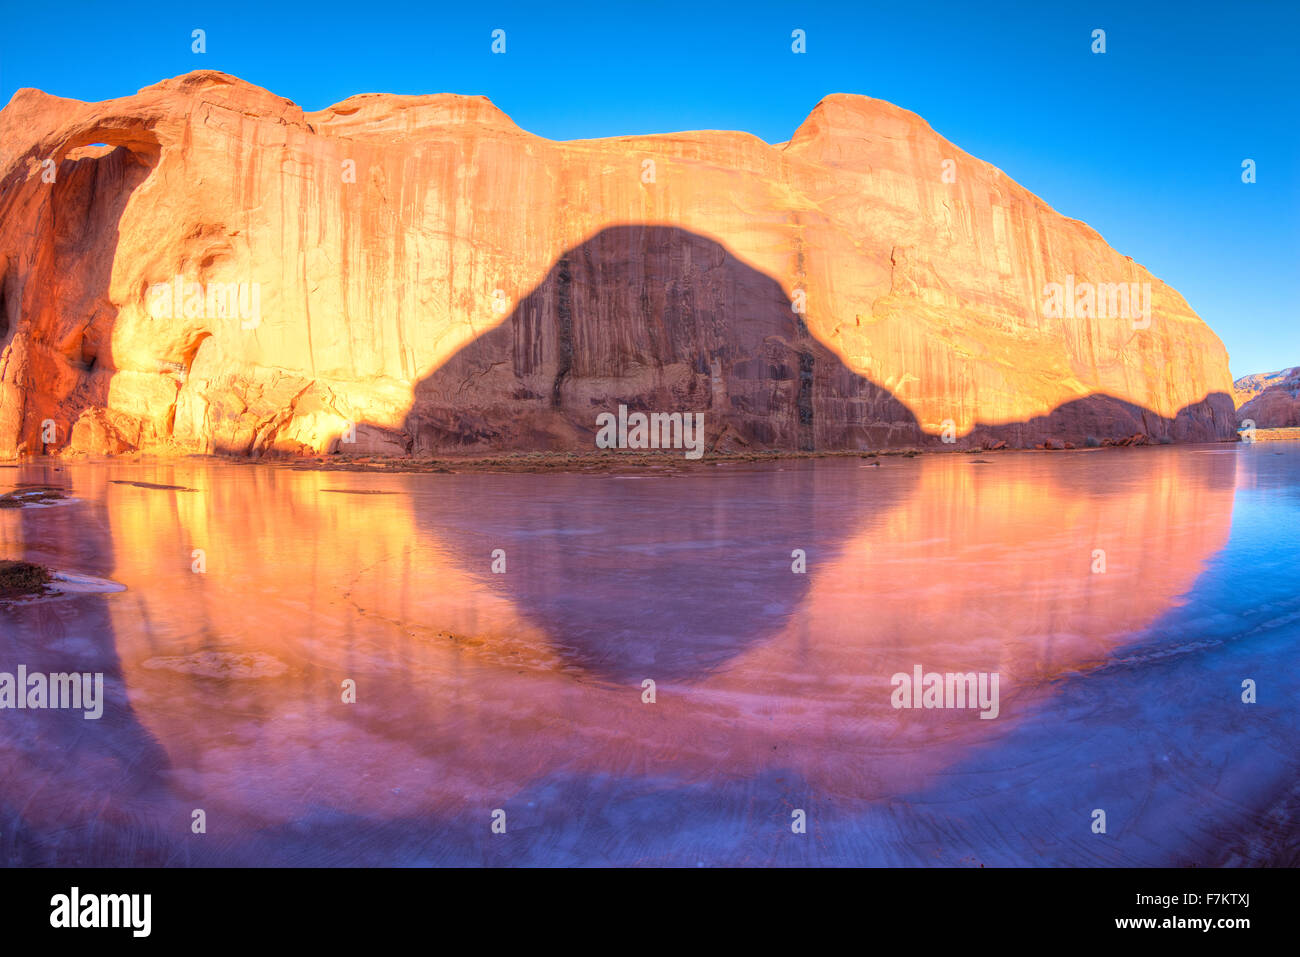 Eye of the Sun Arch reflected in ice, Monument Valley Tribal Park, Arizona   Navajo Reservation - Stock Image